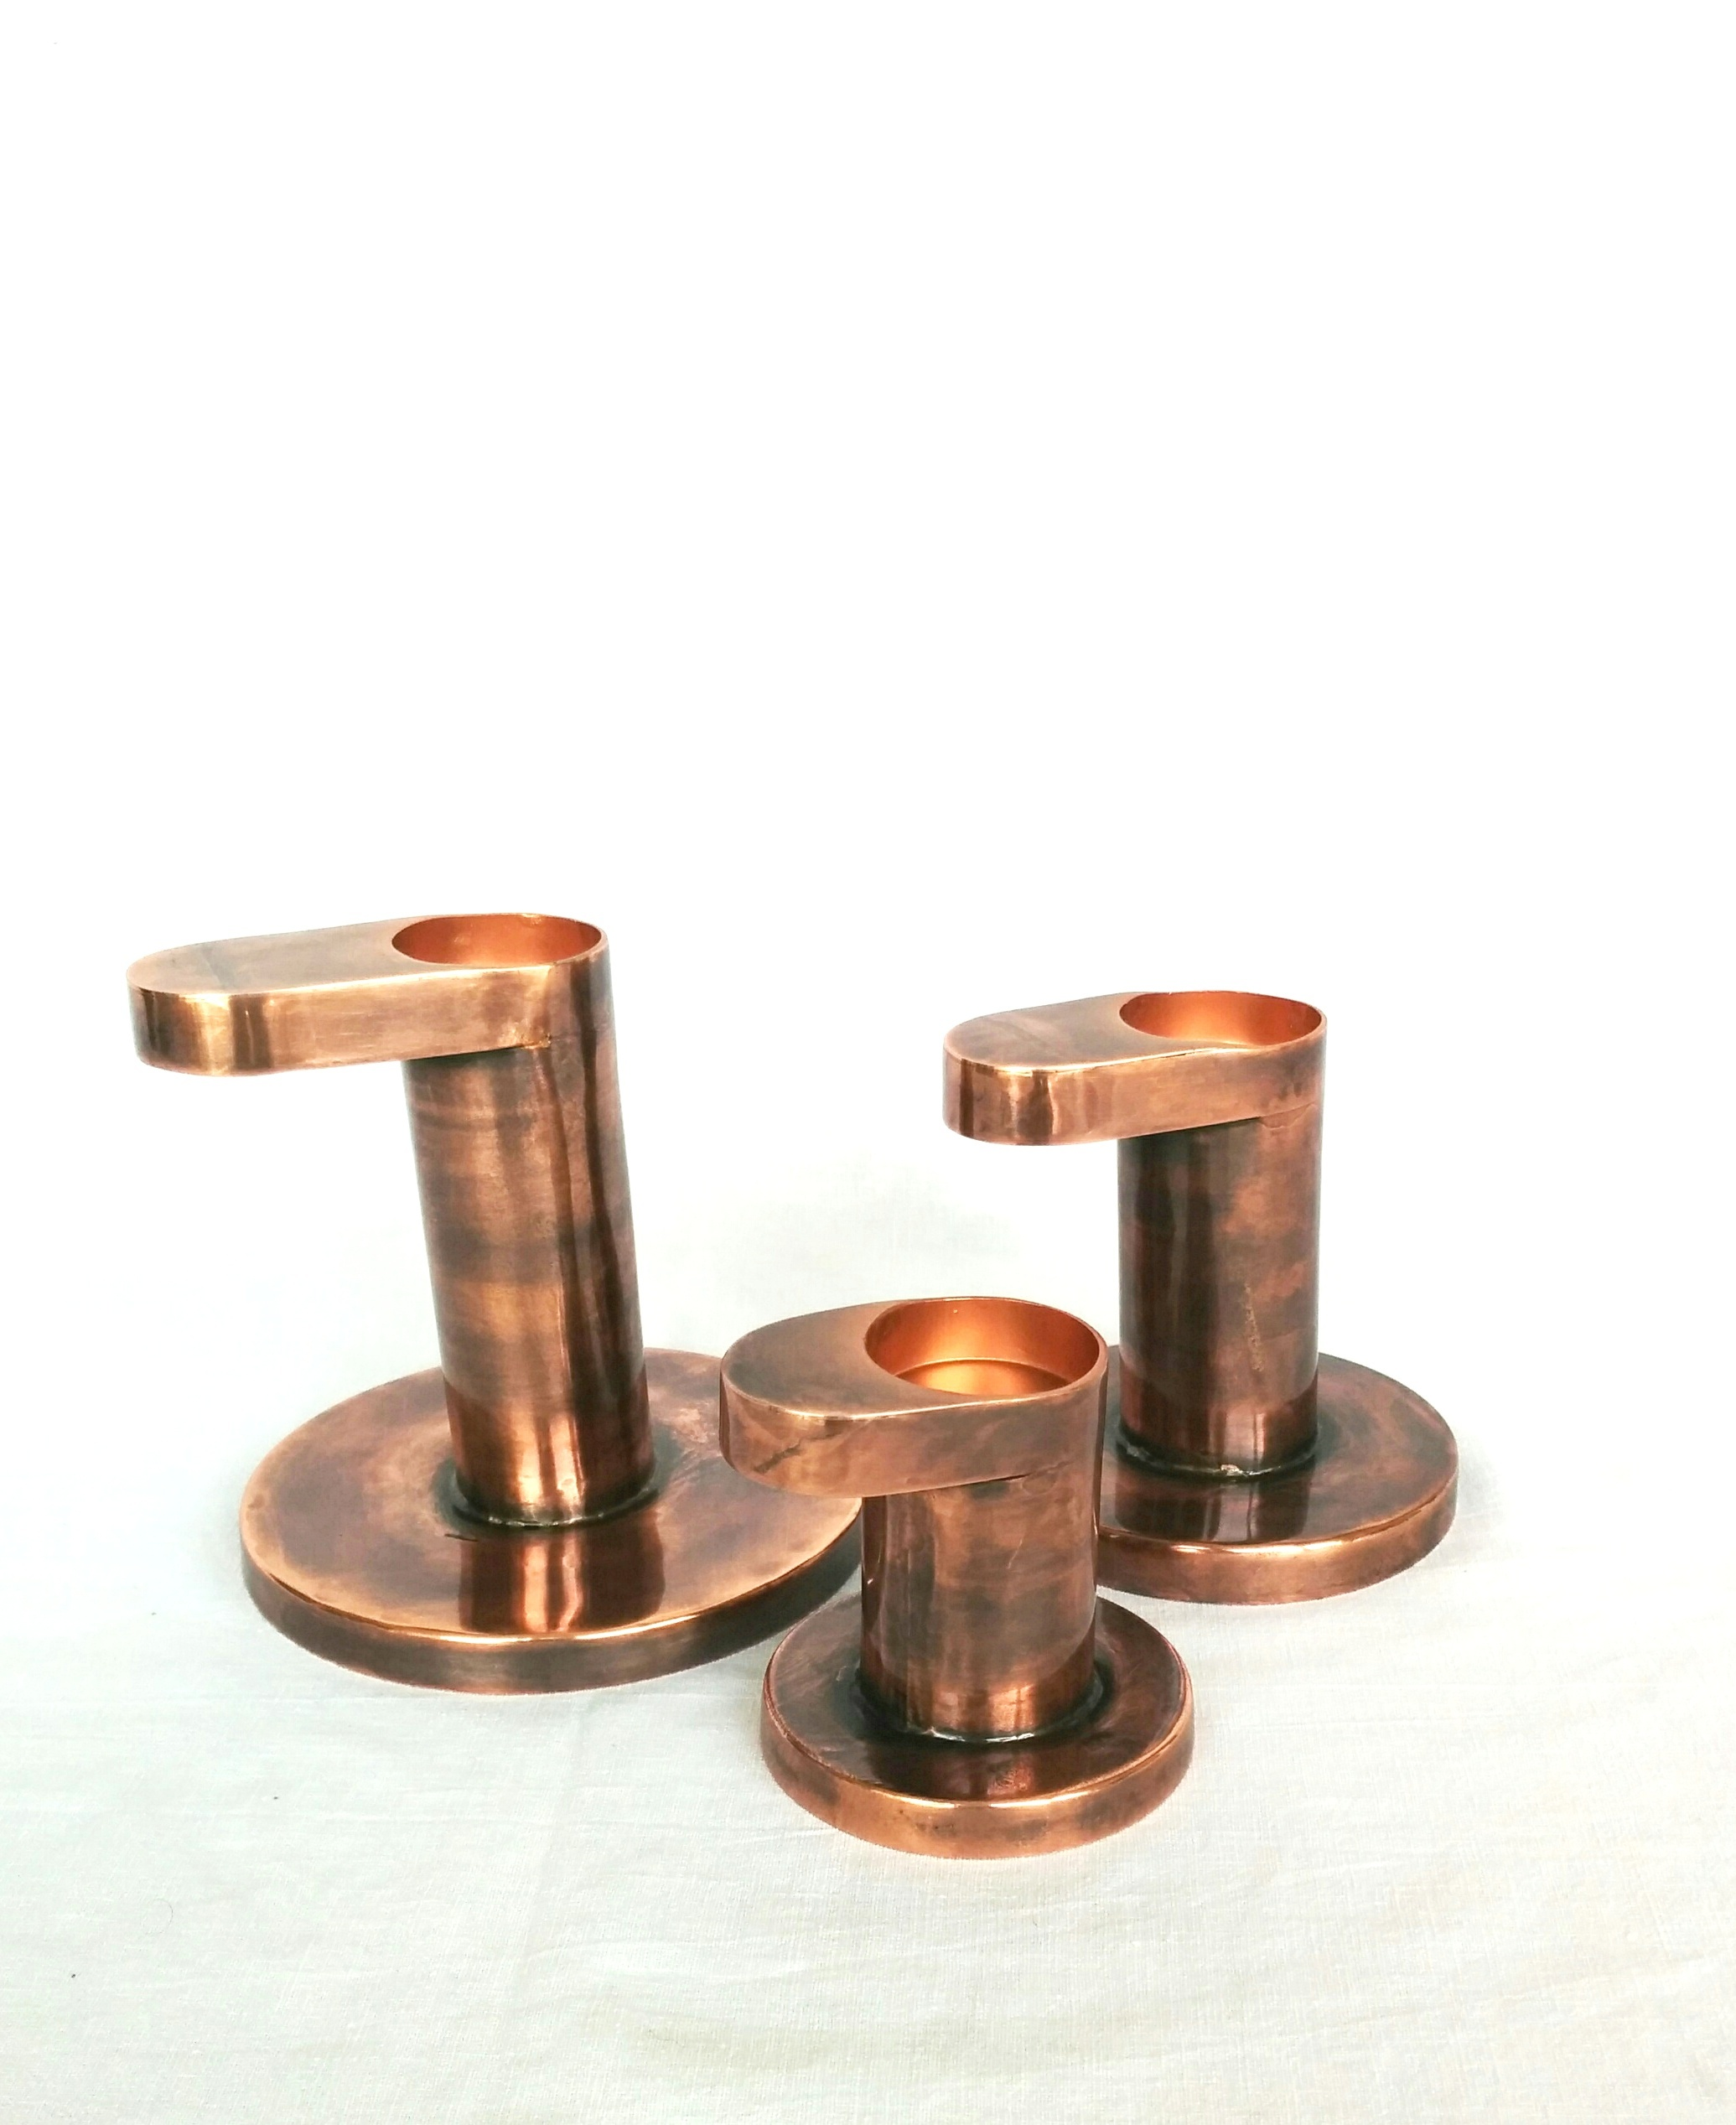 Copper Cylindrical Vase